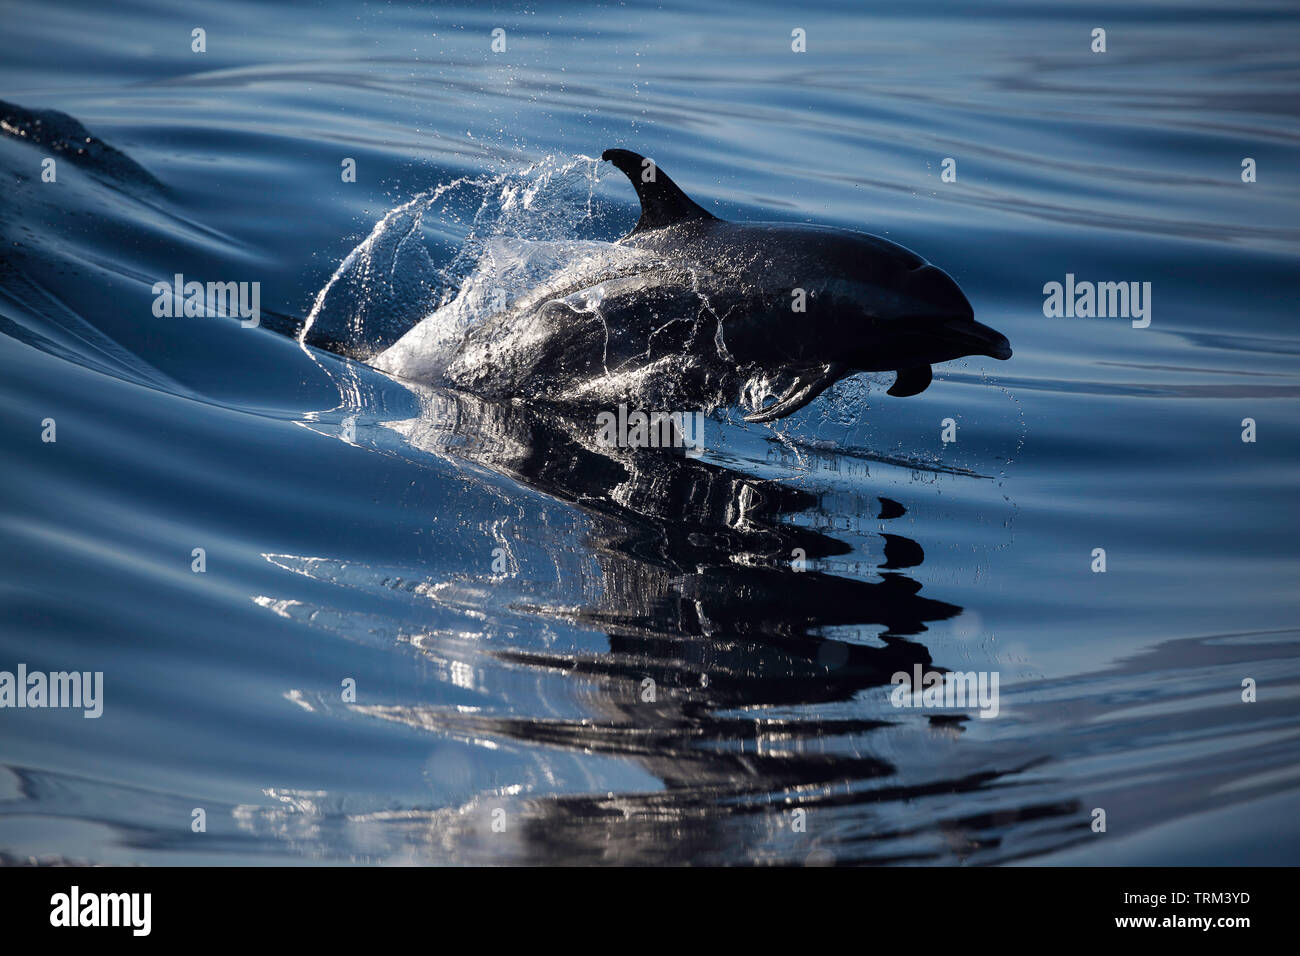 A Pacific spotted dolphin, Stenella attenuata, leaps out of a wave face in the early morning, Hawaii. - Stock Image